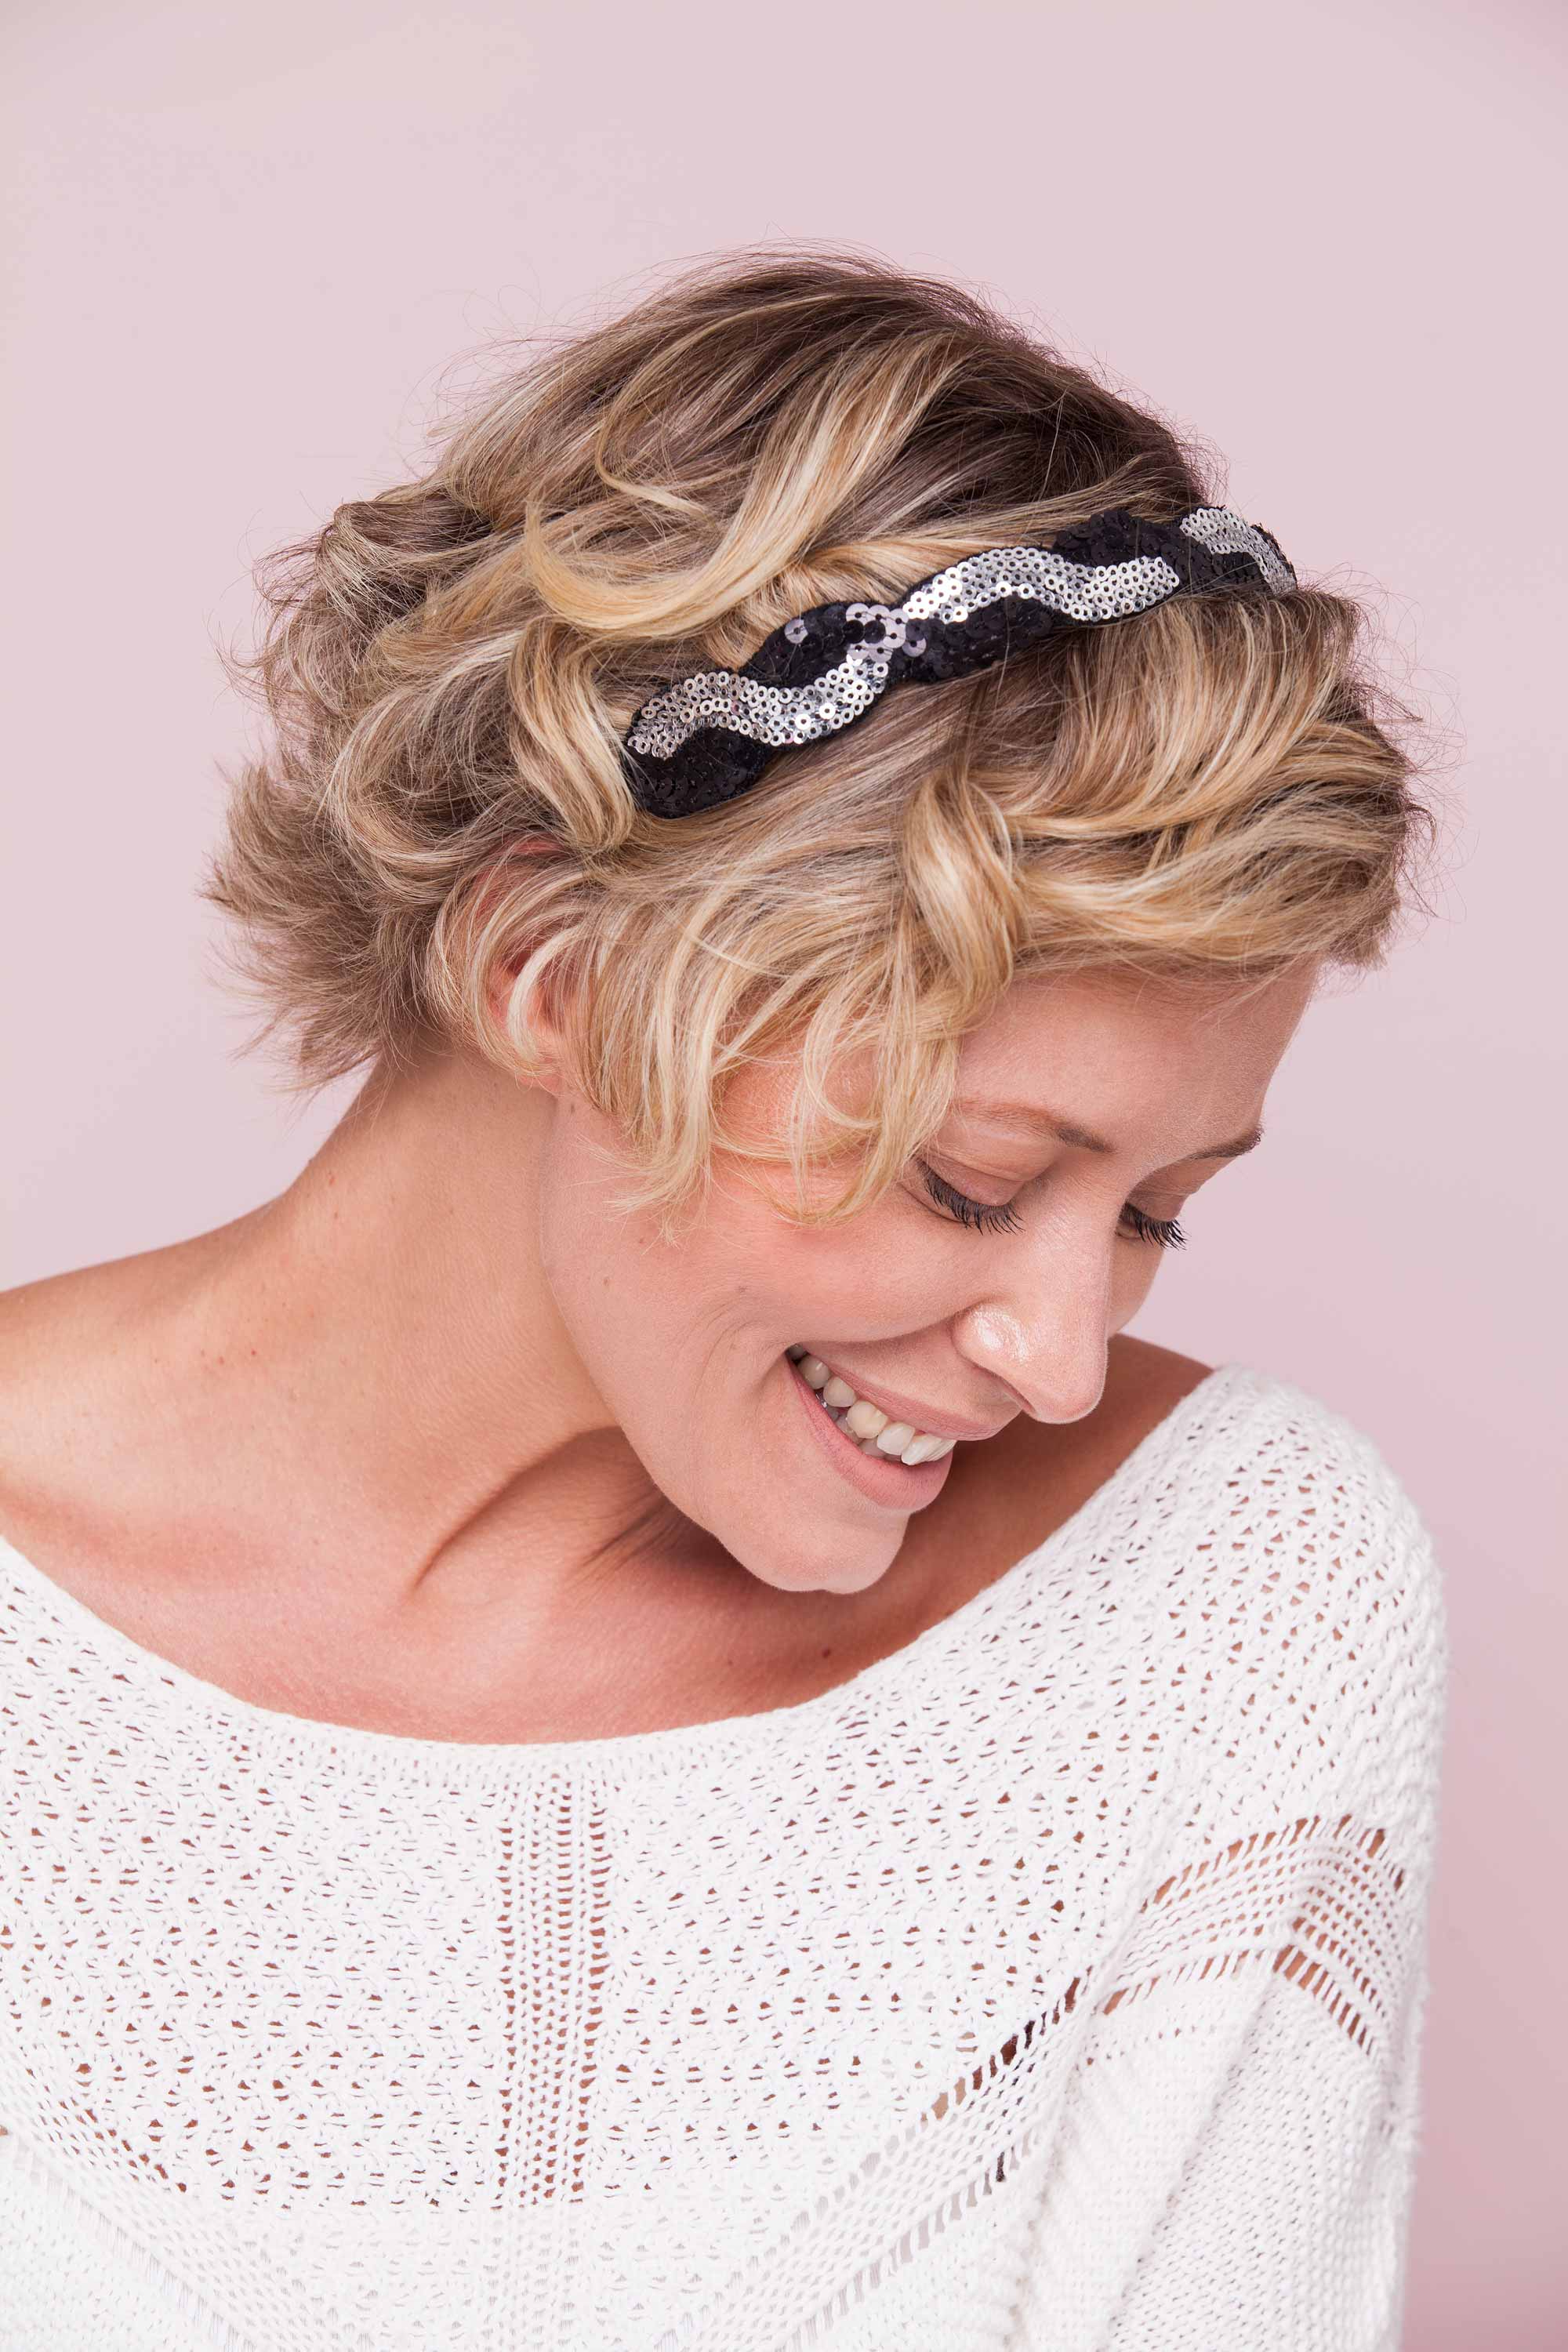 11 Glitzy Wedding Guest Hairstyles For End Of Year Weddings In Hairstyles For Short Hair Wedding Guest (View 20 of 25)